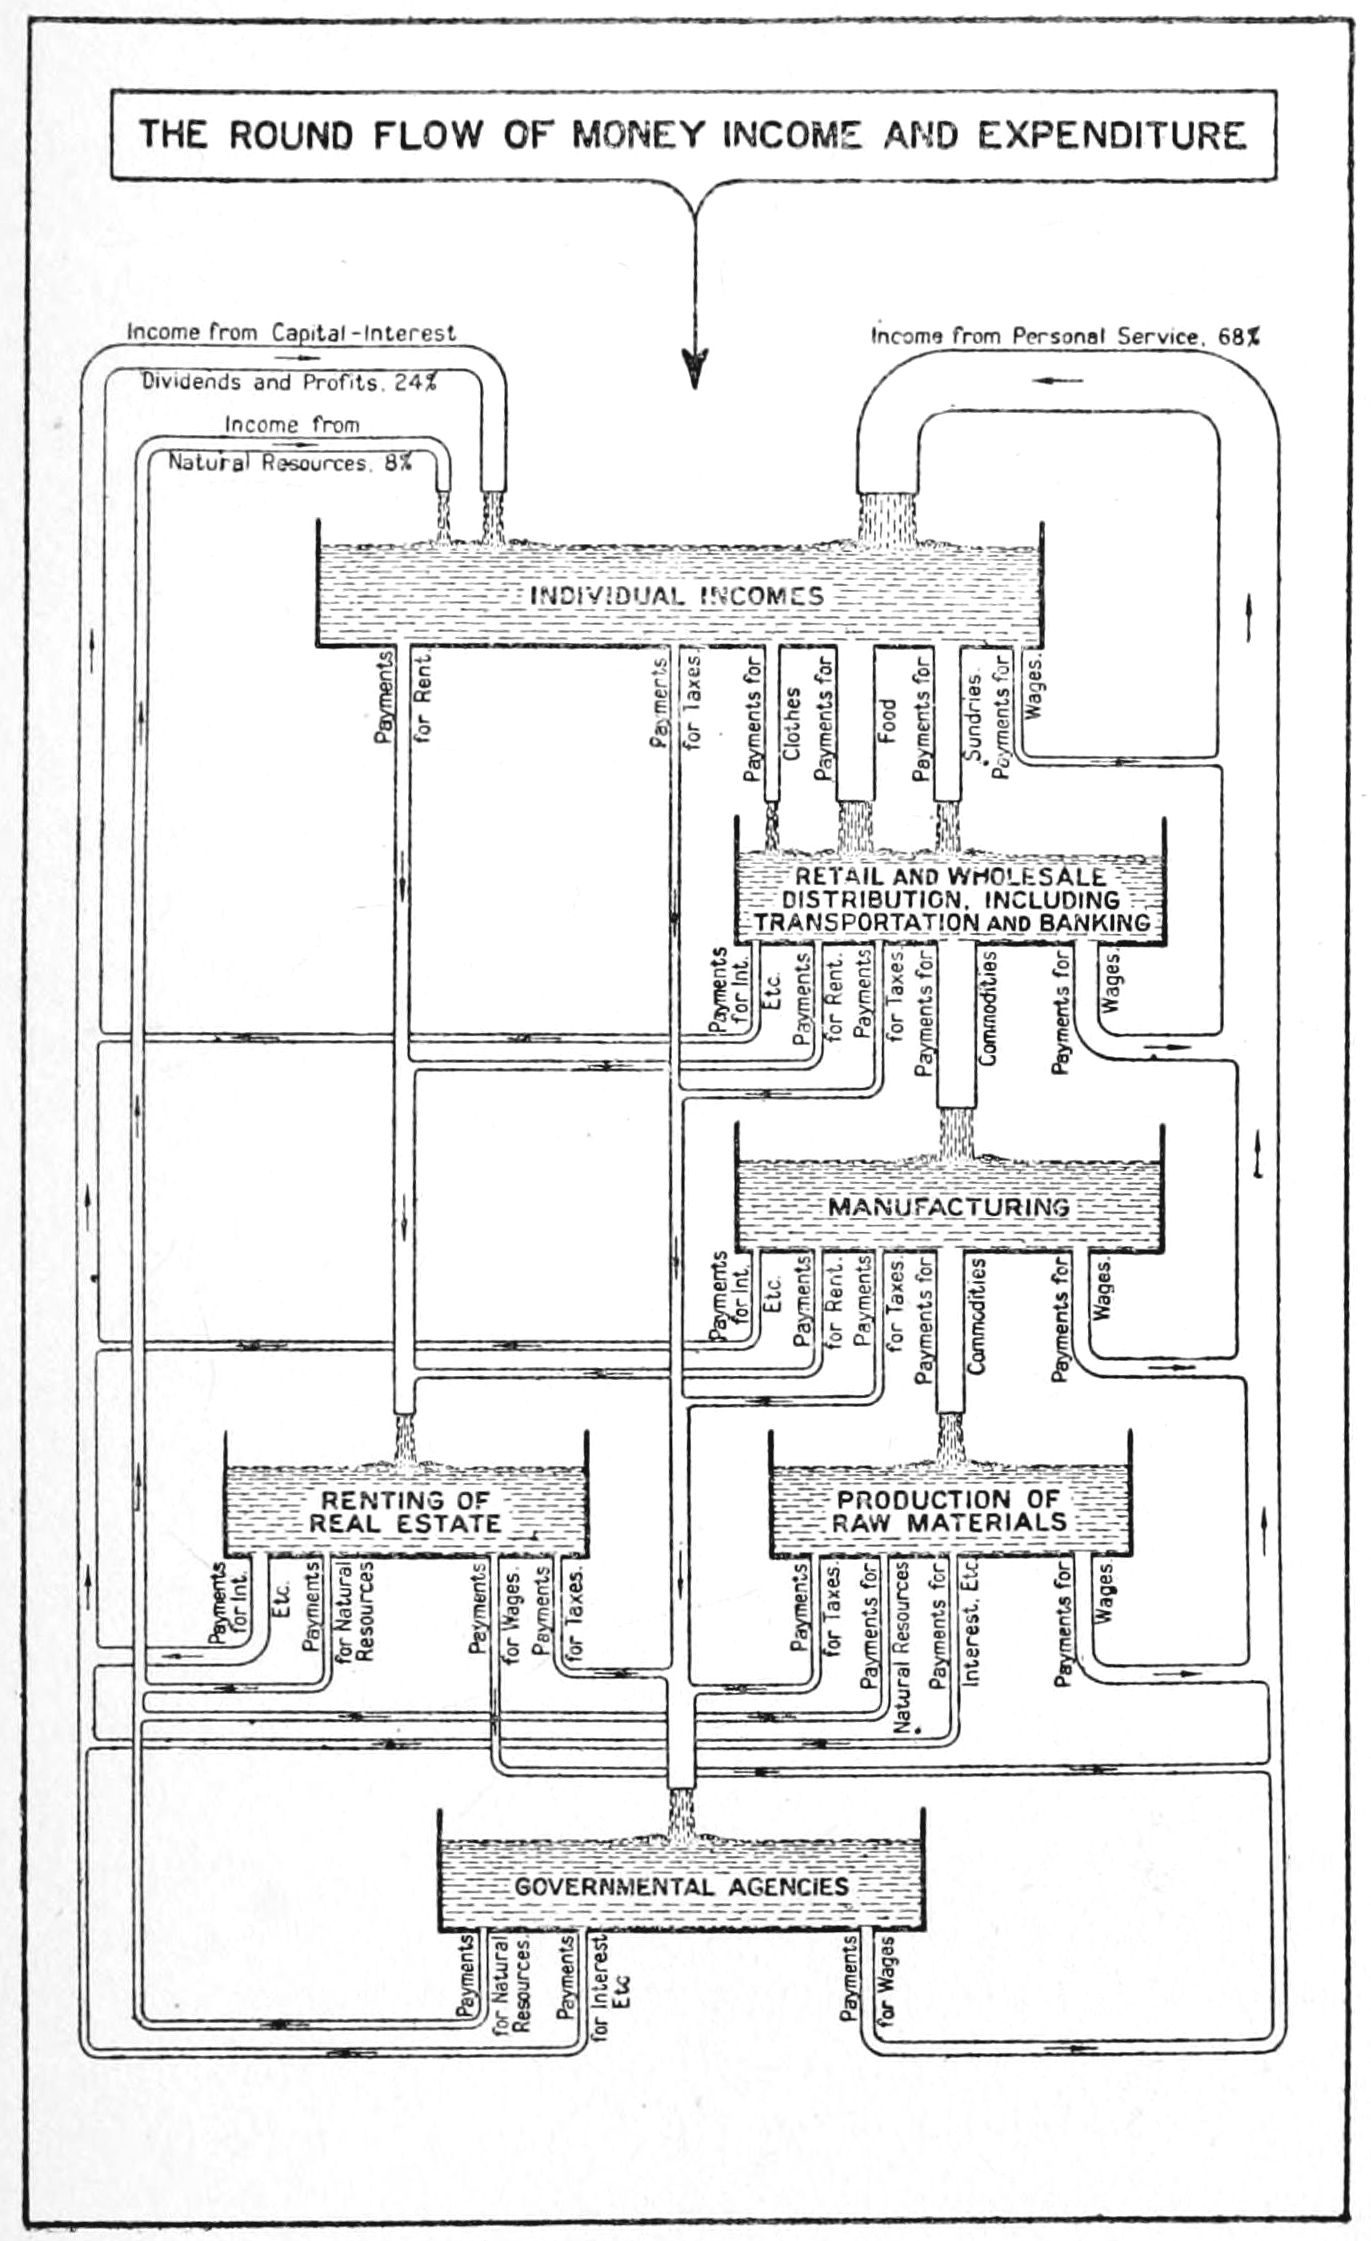 Money Flow Chart: The Round Flow of Money Income and Expenditure 1922.jpg ,Chart